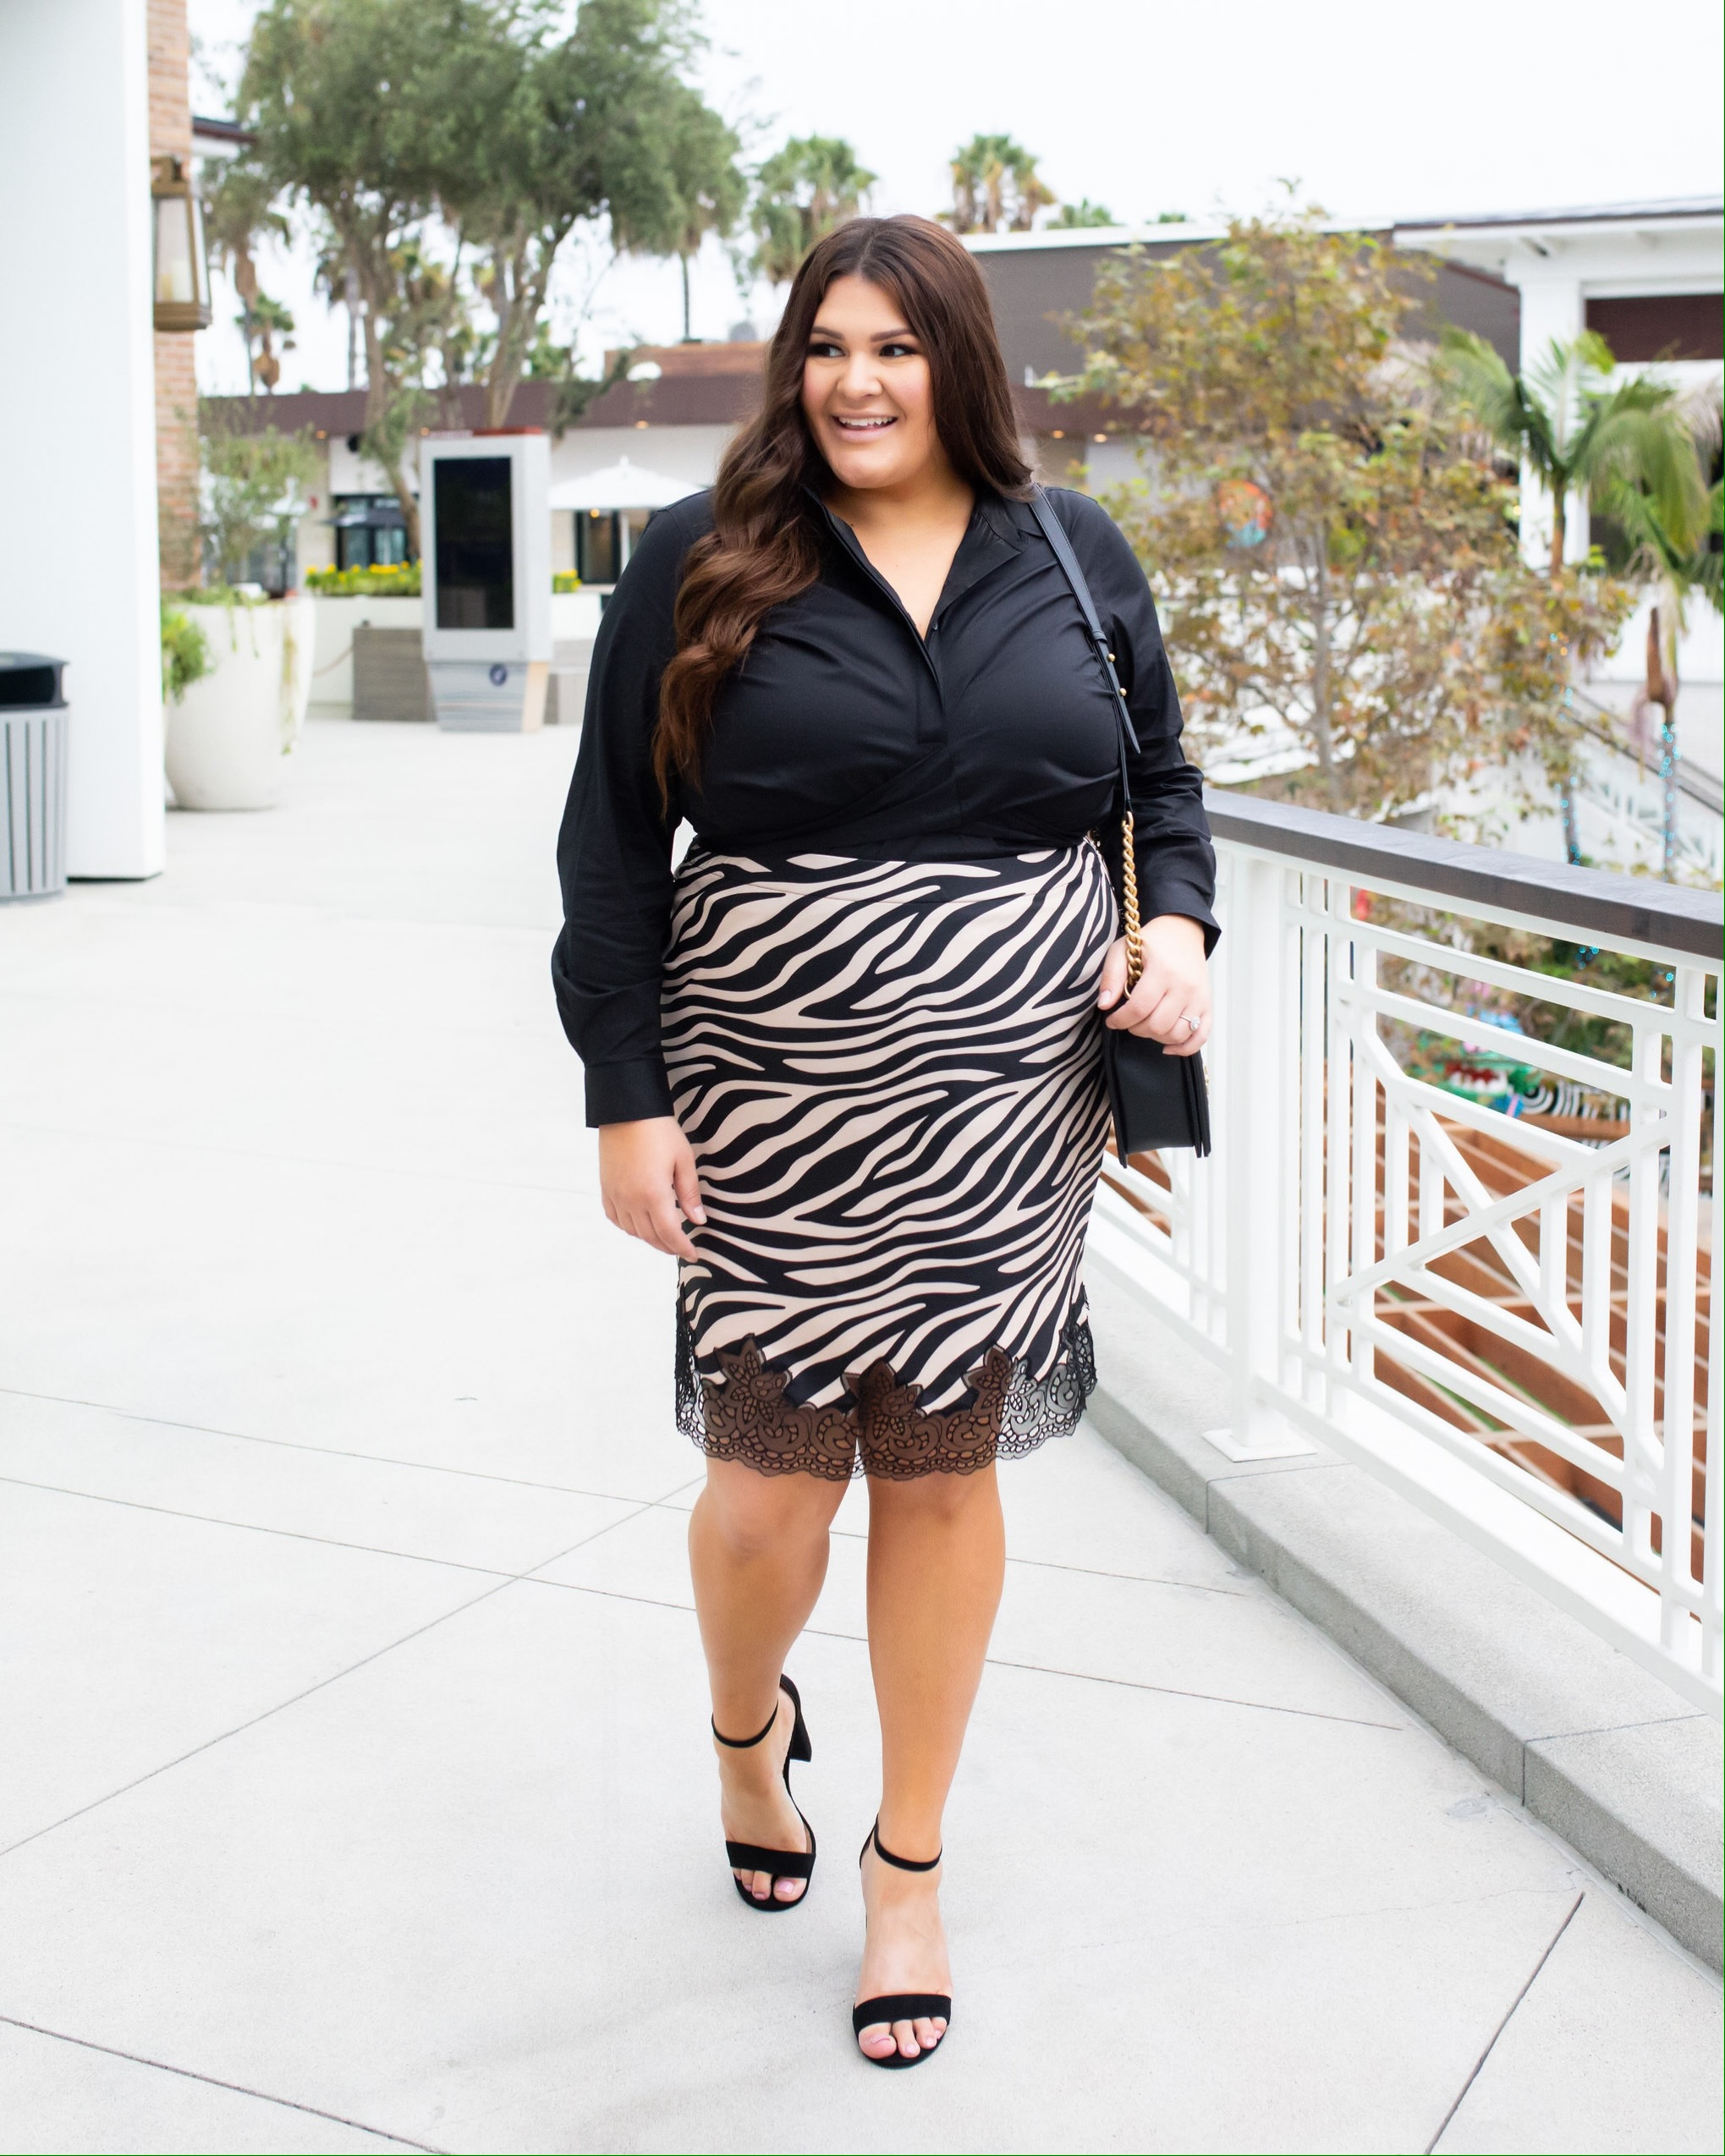 plus size workwear outift